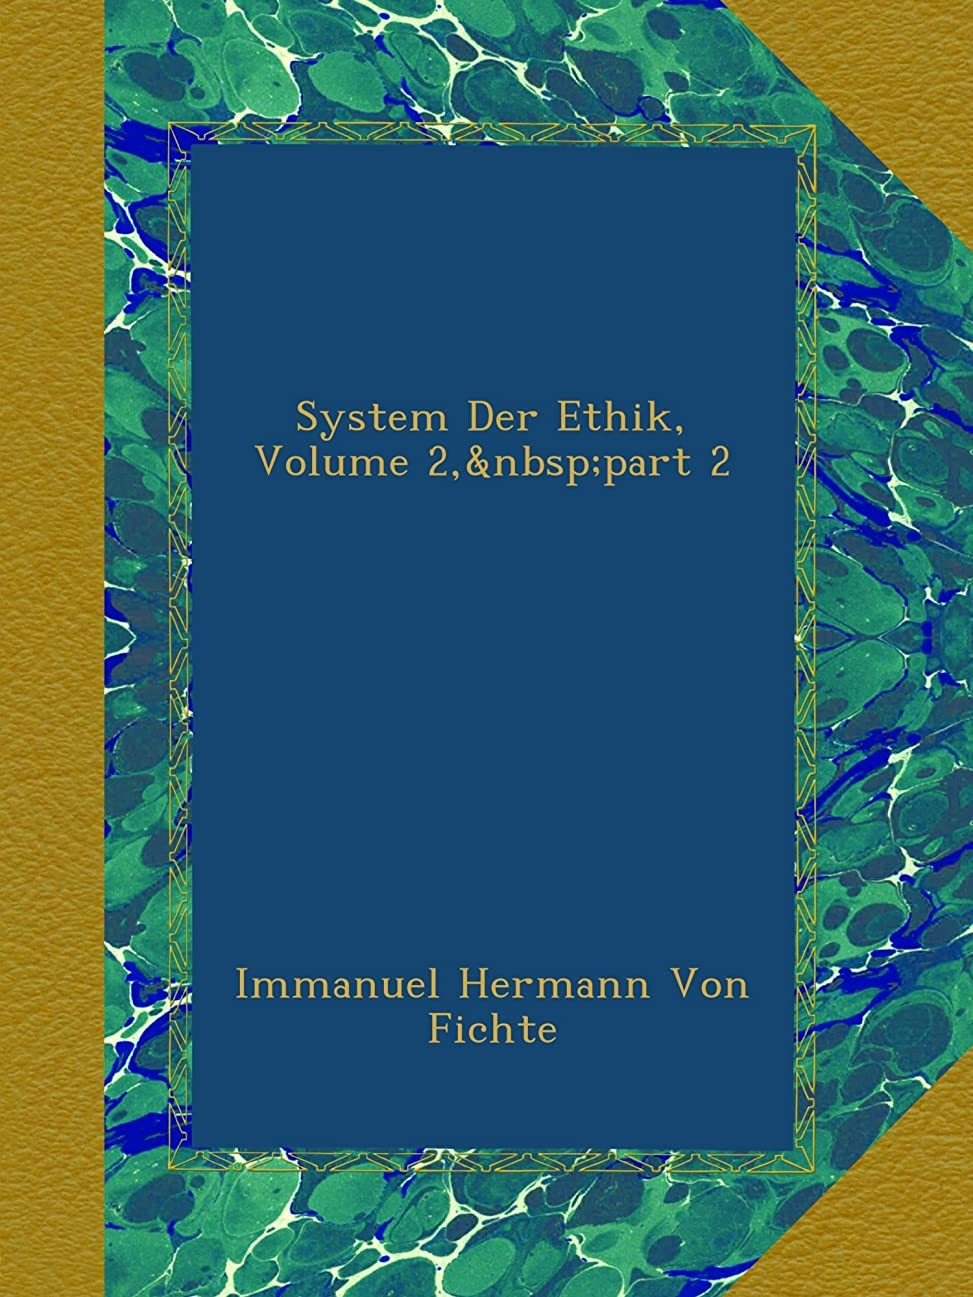 修理工ラベ明らかにSystem Der Ethik, Volume 2,?part 2